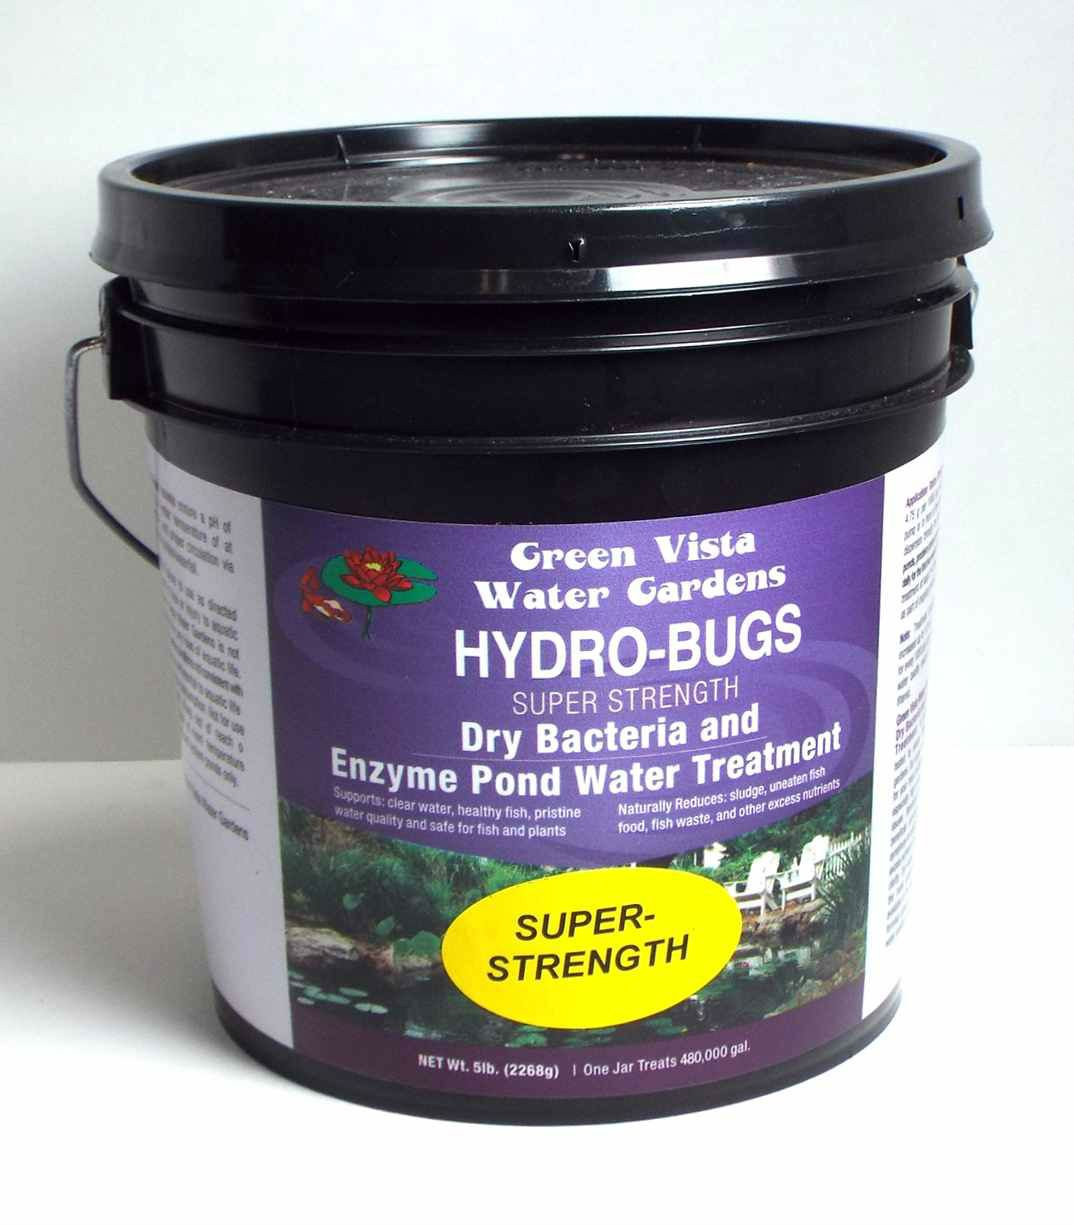 Green Vista Hydro-Bugs Dry Beneficial Bacteria - Super Strength - 5 Pounds - Pond Algae Control - Probiotic Treatment Reduces Sludge, Fish Waste - Improves Water Quality, Clarity - Koi, Plant Safe